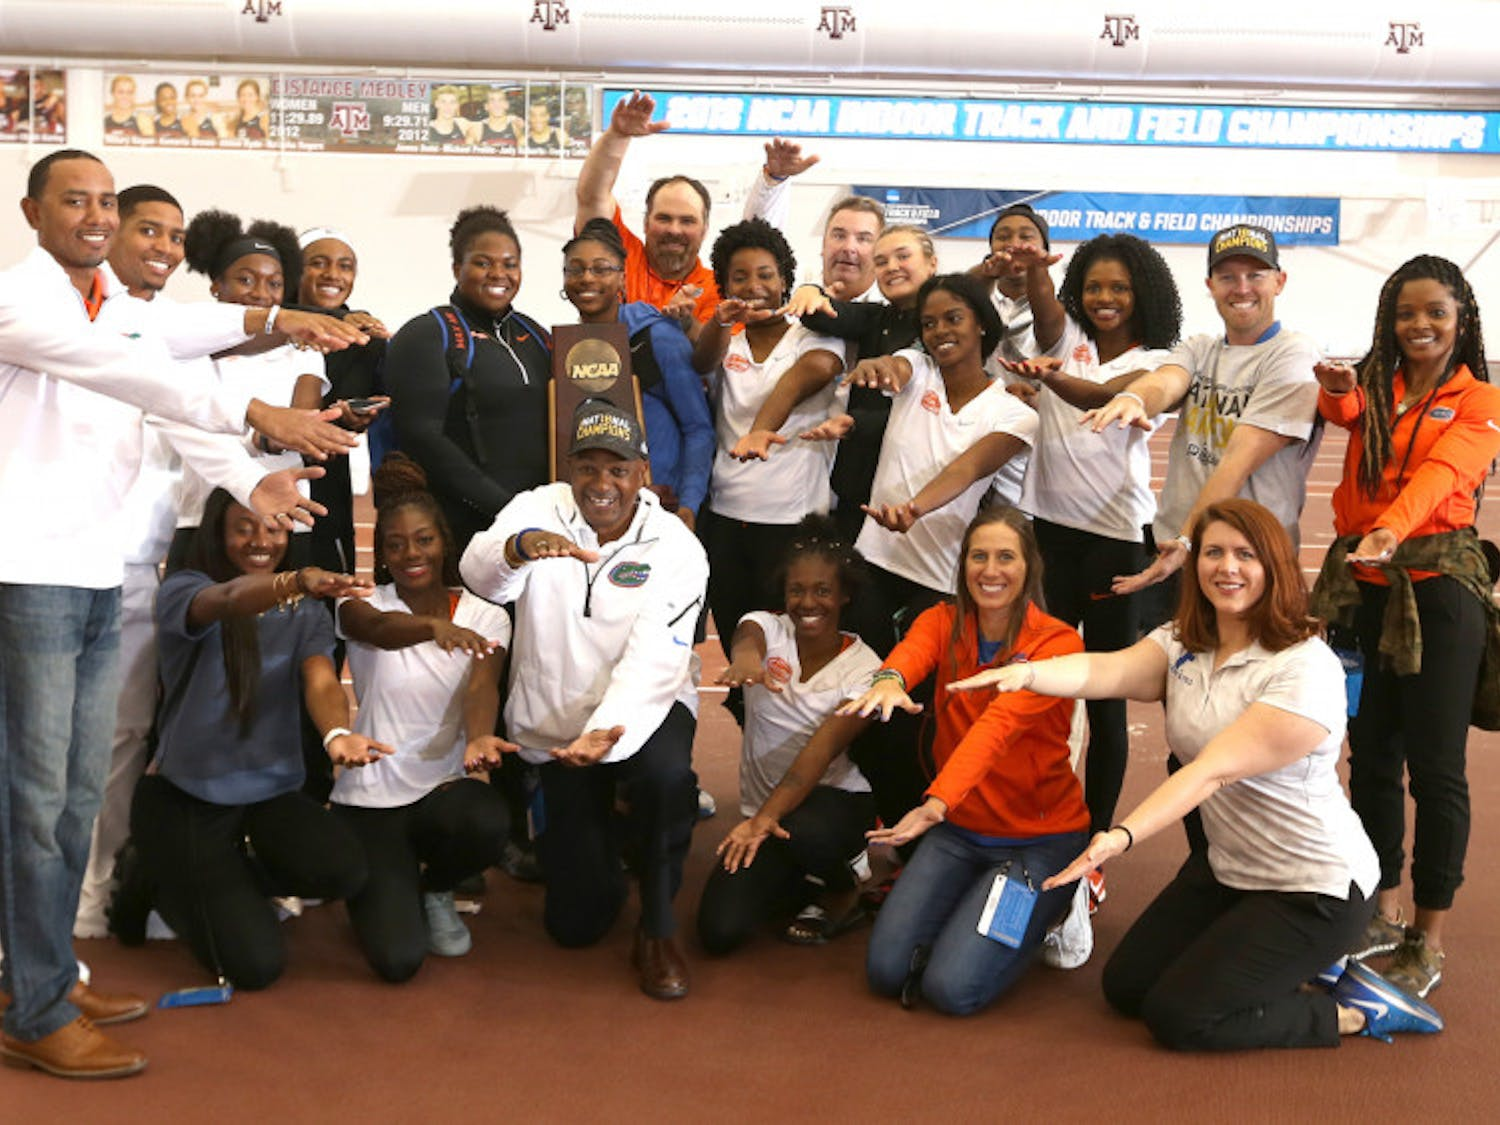 The UF men's and women's track and field teams both took first and fourth, respectively, at the NCAA Indoor Championships in Fayetteville, Arkansas.